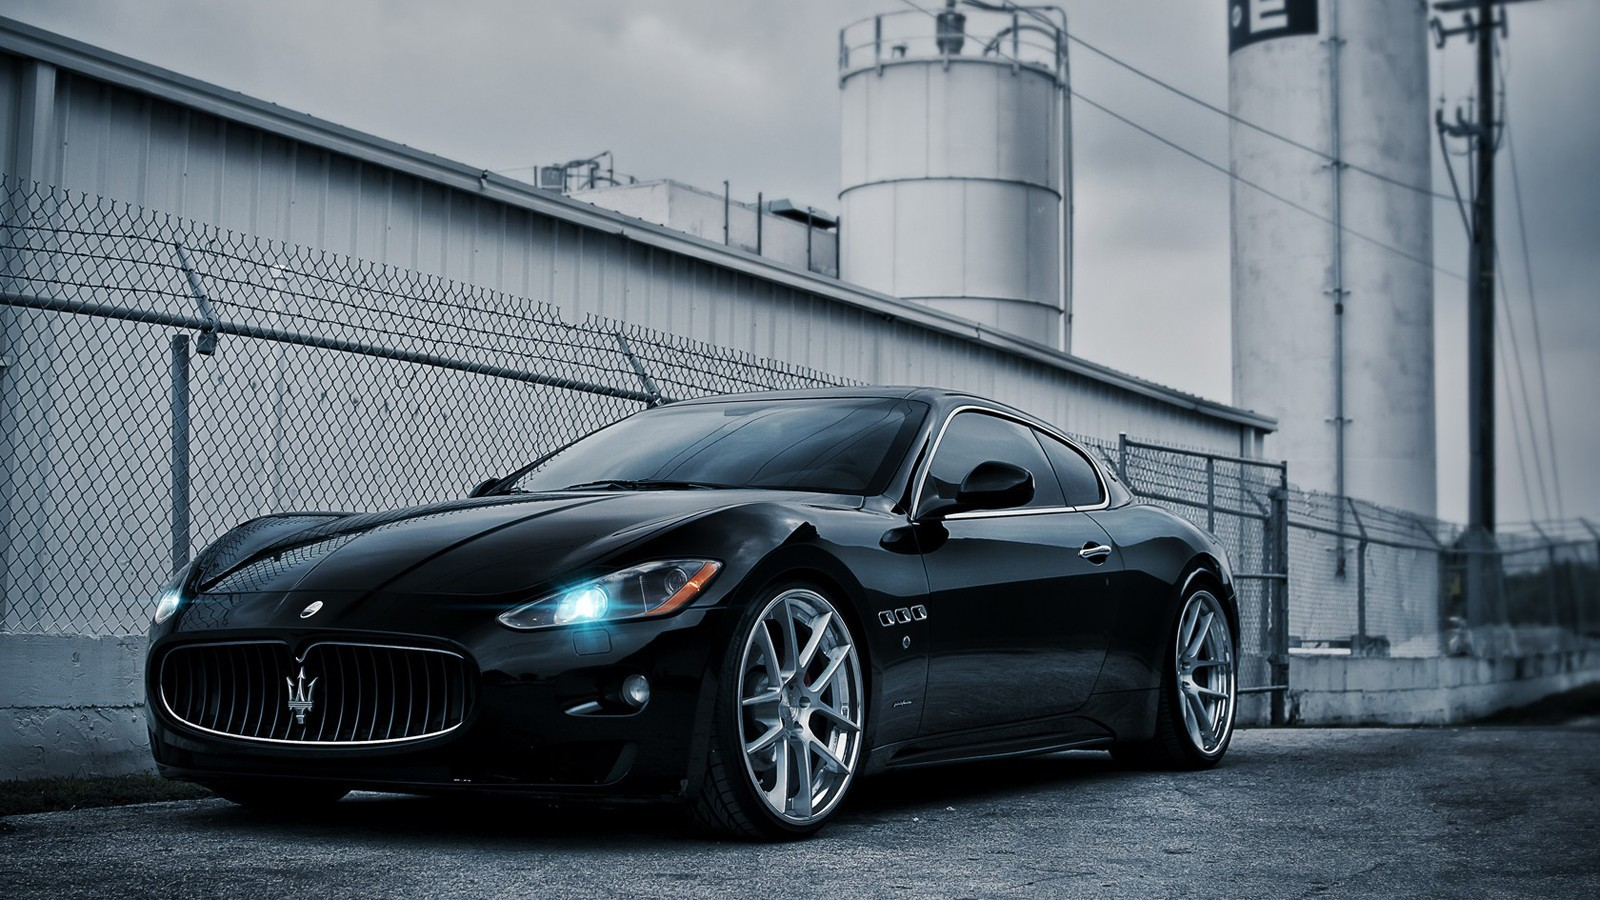 Maserati Computer Wallpapers Desktop Backgrounds 1600x900 ID 1600x900